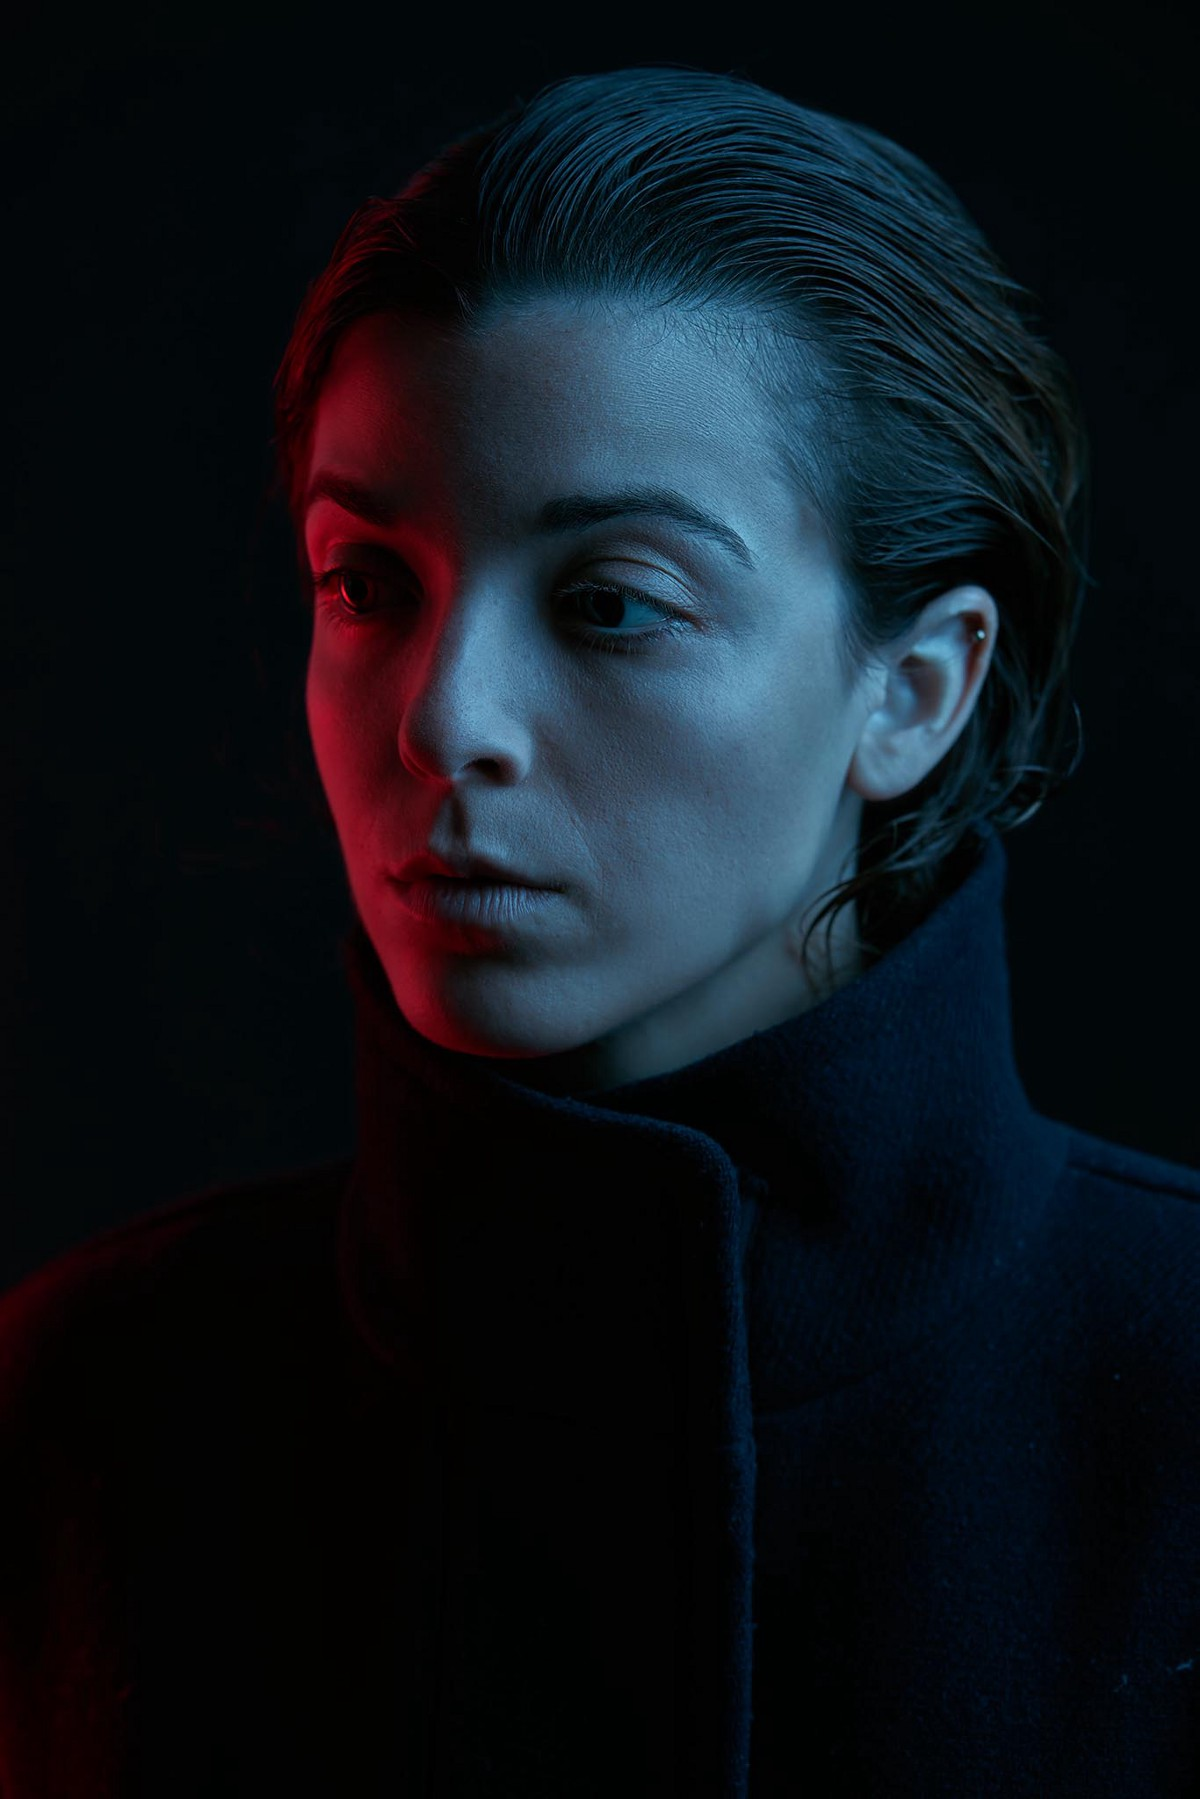 Shooting Blade Runner Inspired Portraits Using Colour Gels